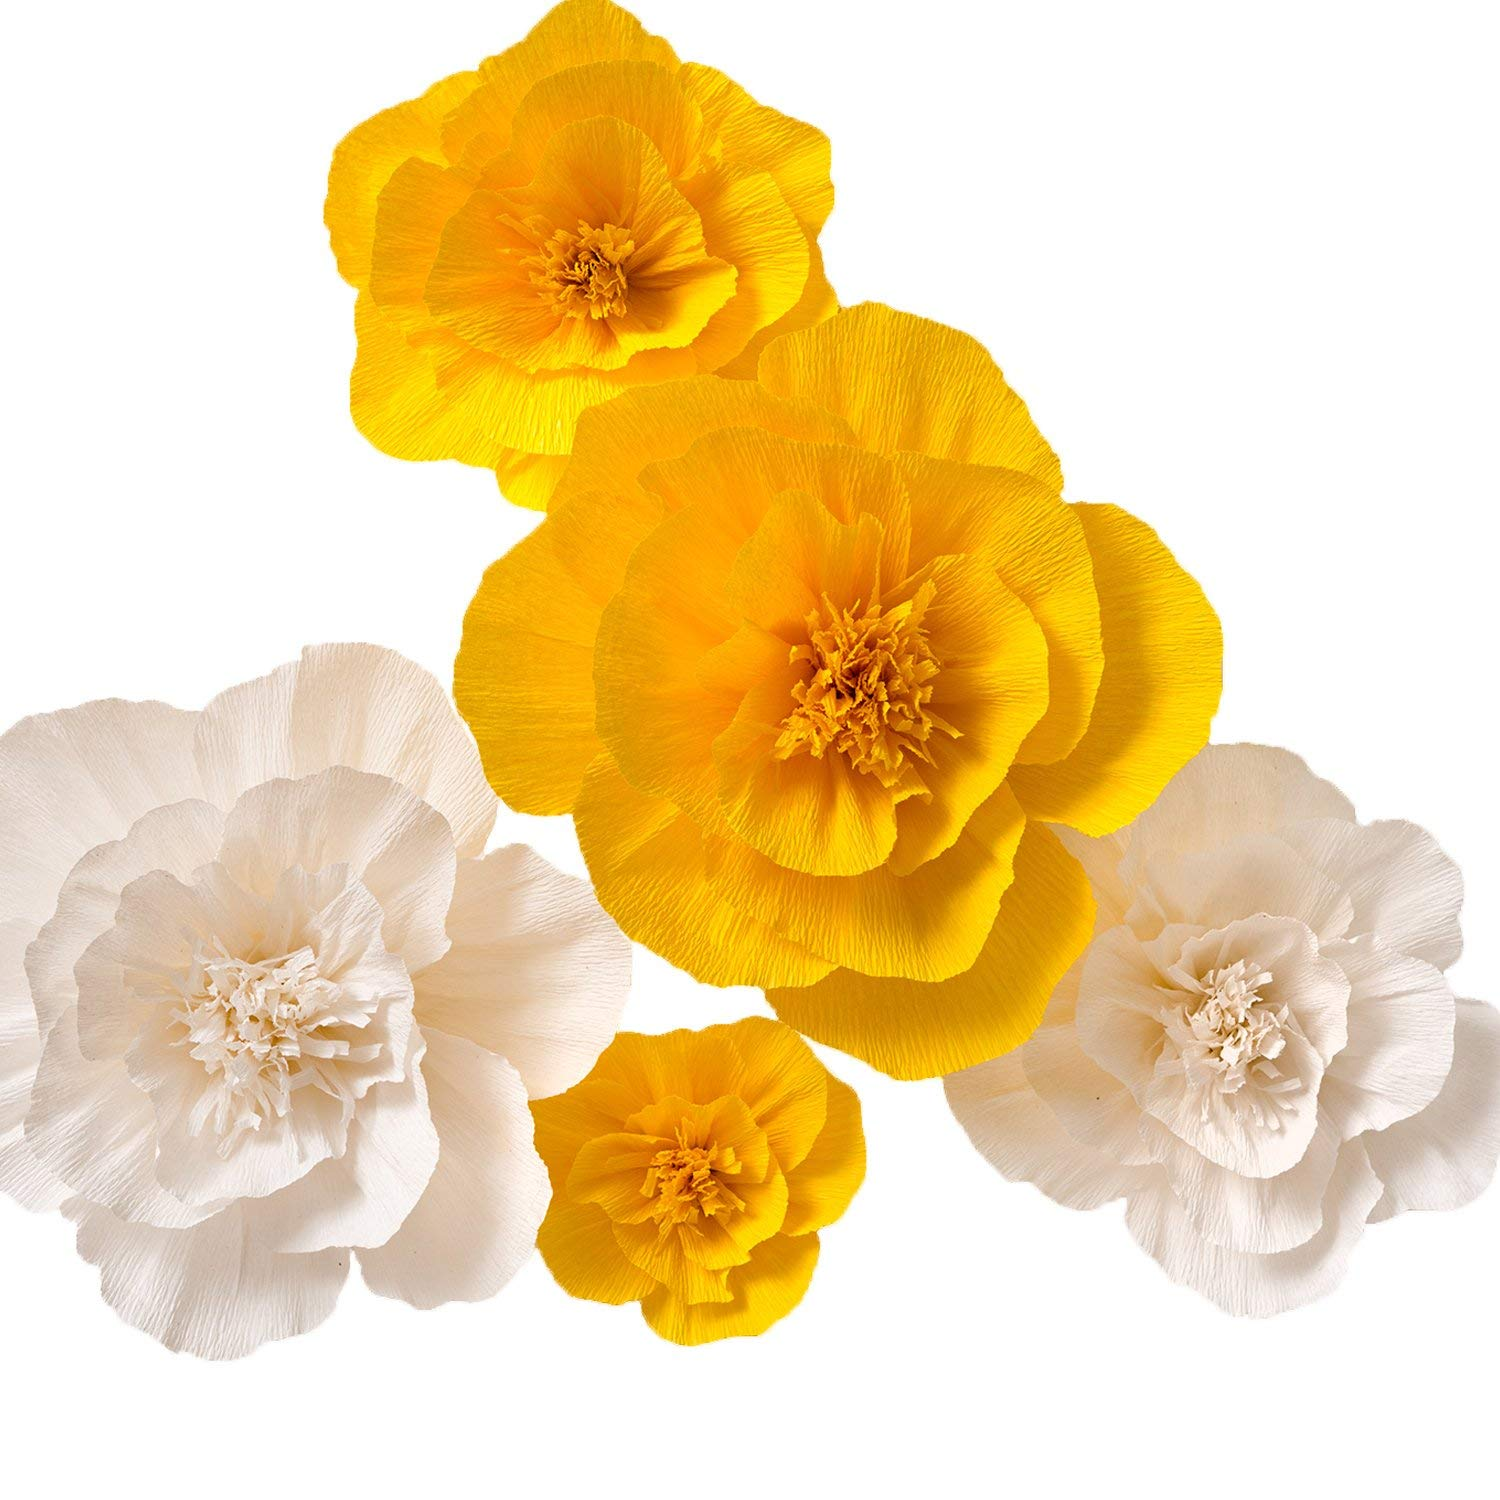 Paper Flower Decorations, Large Paper Flowers (Yellow, White, Set of 5), Handcrafted Flowers, Crepe Paper Flowers for Wedding Backdrop, Nursery Wall Decorations, Archway Decorations, Baby Shower